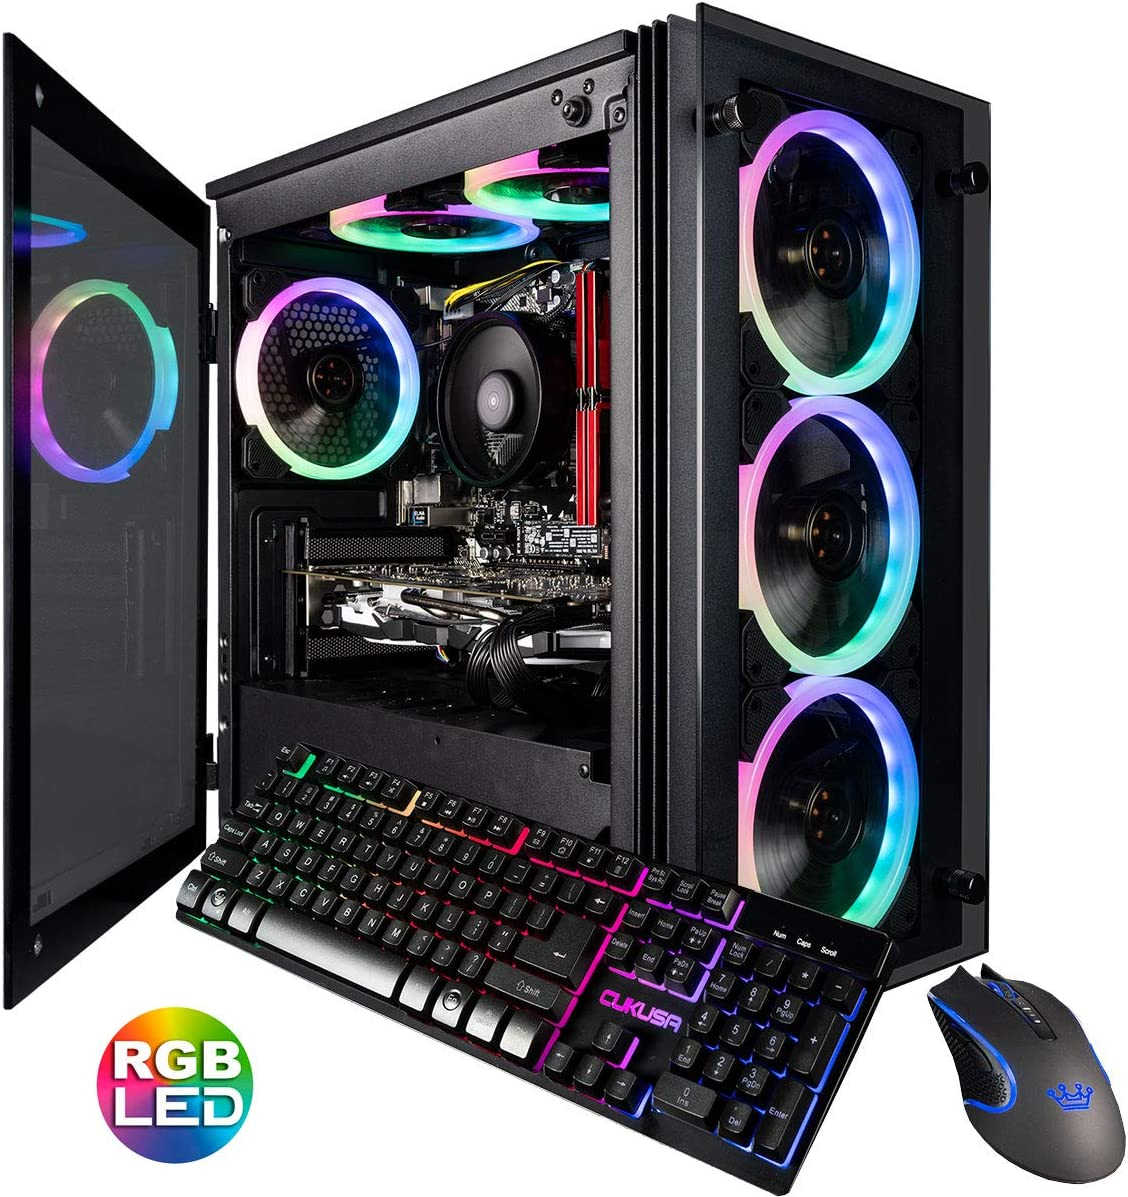 CUK Stratos Micro Gaming Desktop PC (Intel i5-9400F, 16GB DDR4 RAM, 512GB NVMe SSD, NVIDIA GeForce GTX 1650 Super 4GB, 500W White PSU, No OS) Gamer Computer